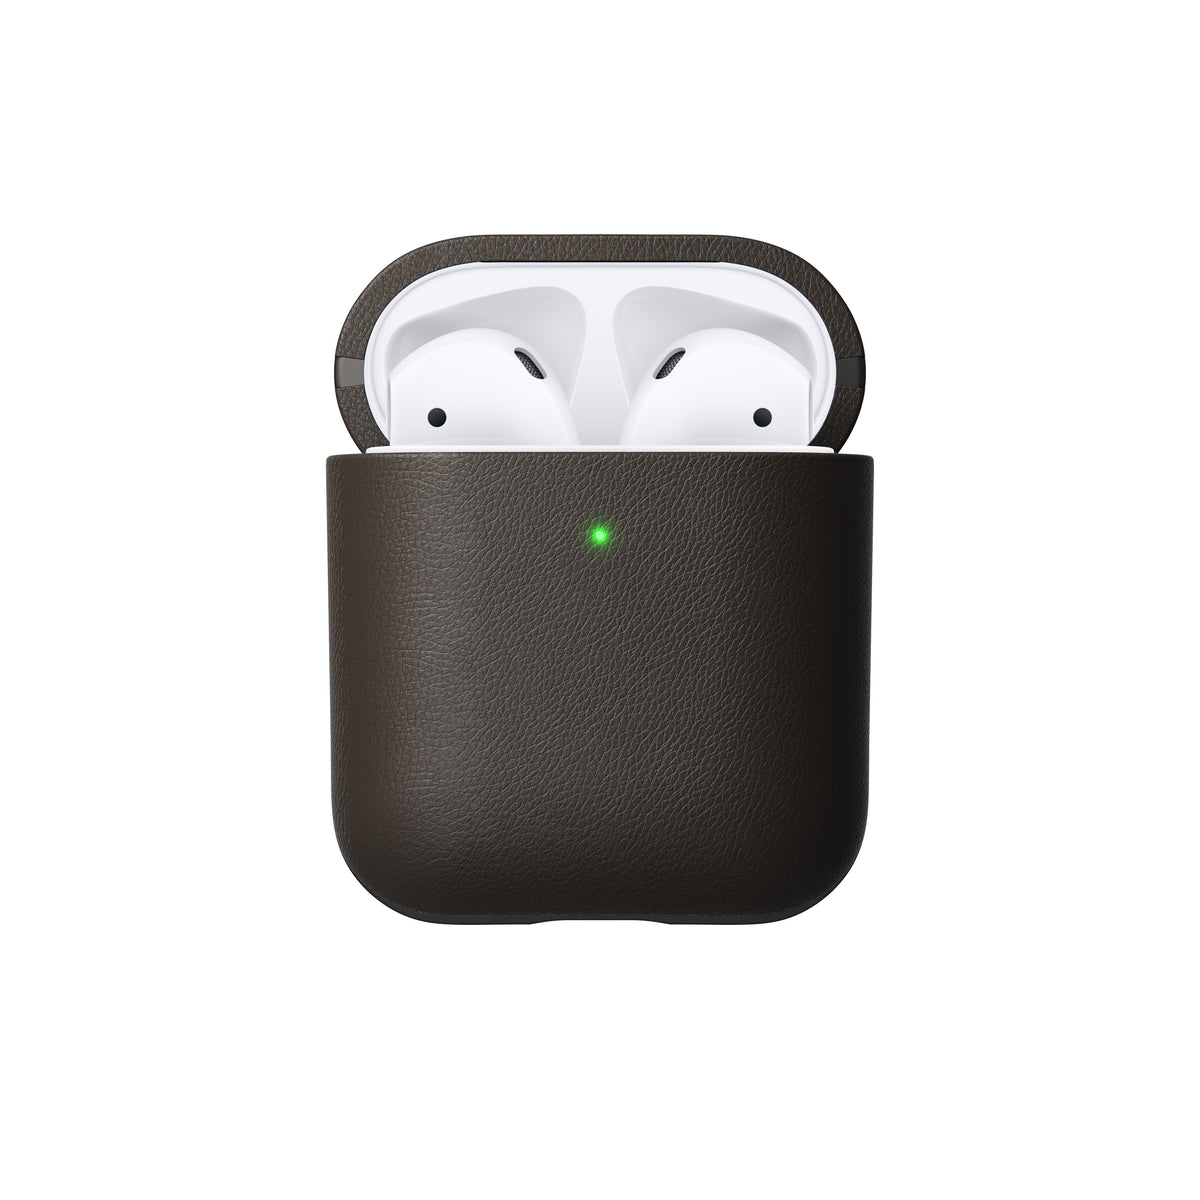 Airpod Rugged Active Case Mocha Brown